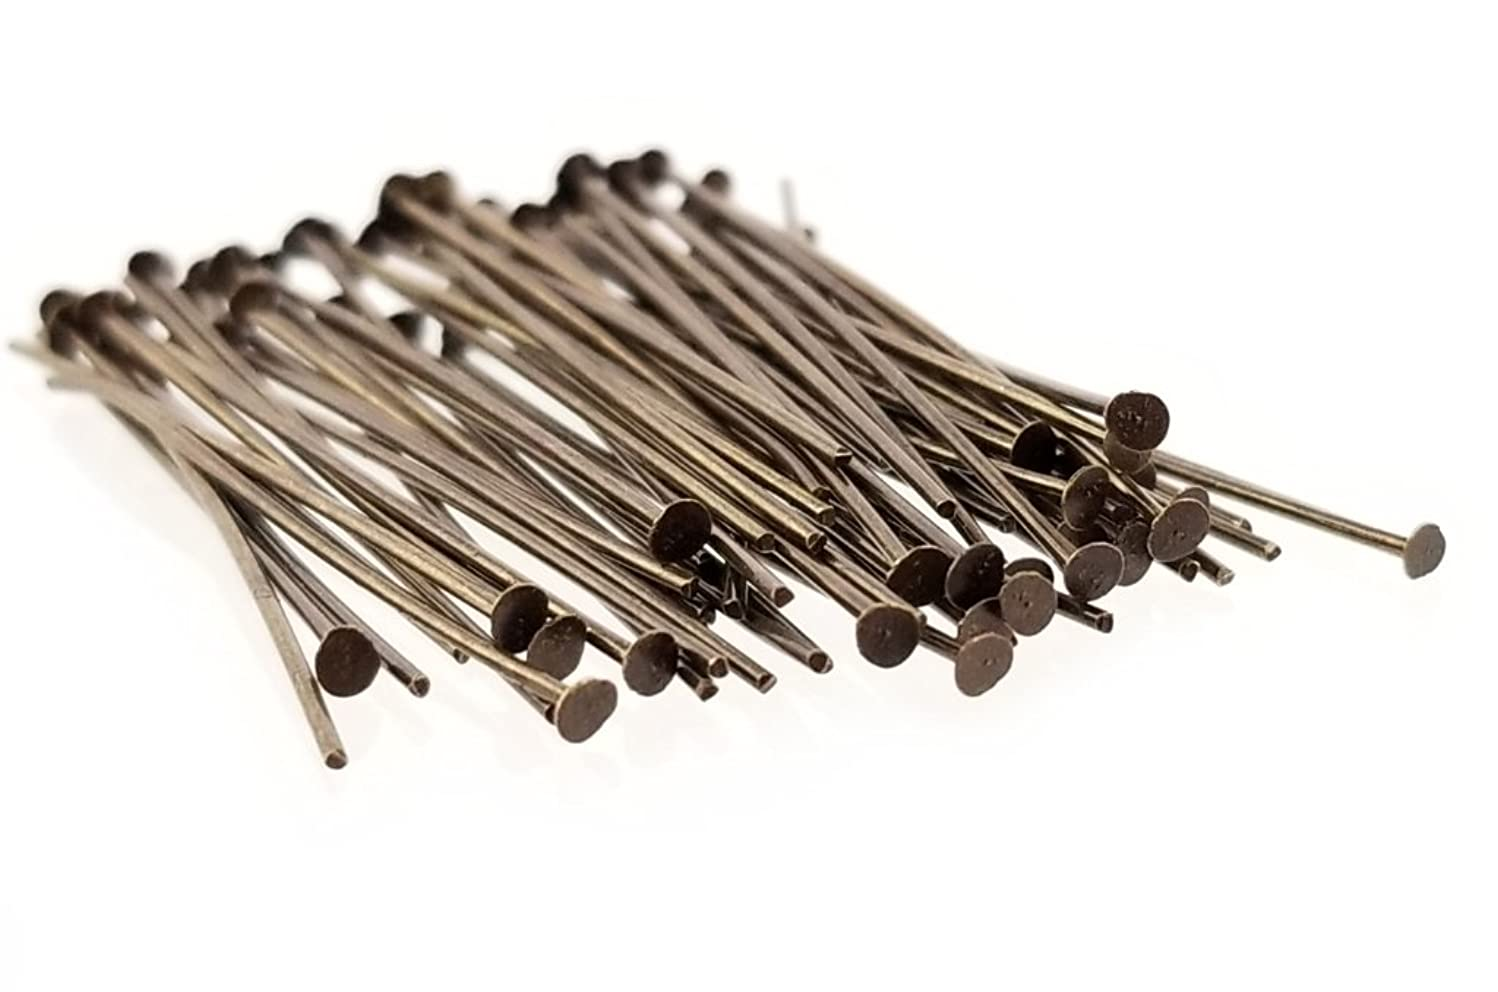 Antique Brass Bronze Small Flat Head Pins for Jewelry Making, Crafts- Nickel Free (35mm, 21 Gauge) 1.4 Inch